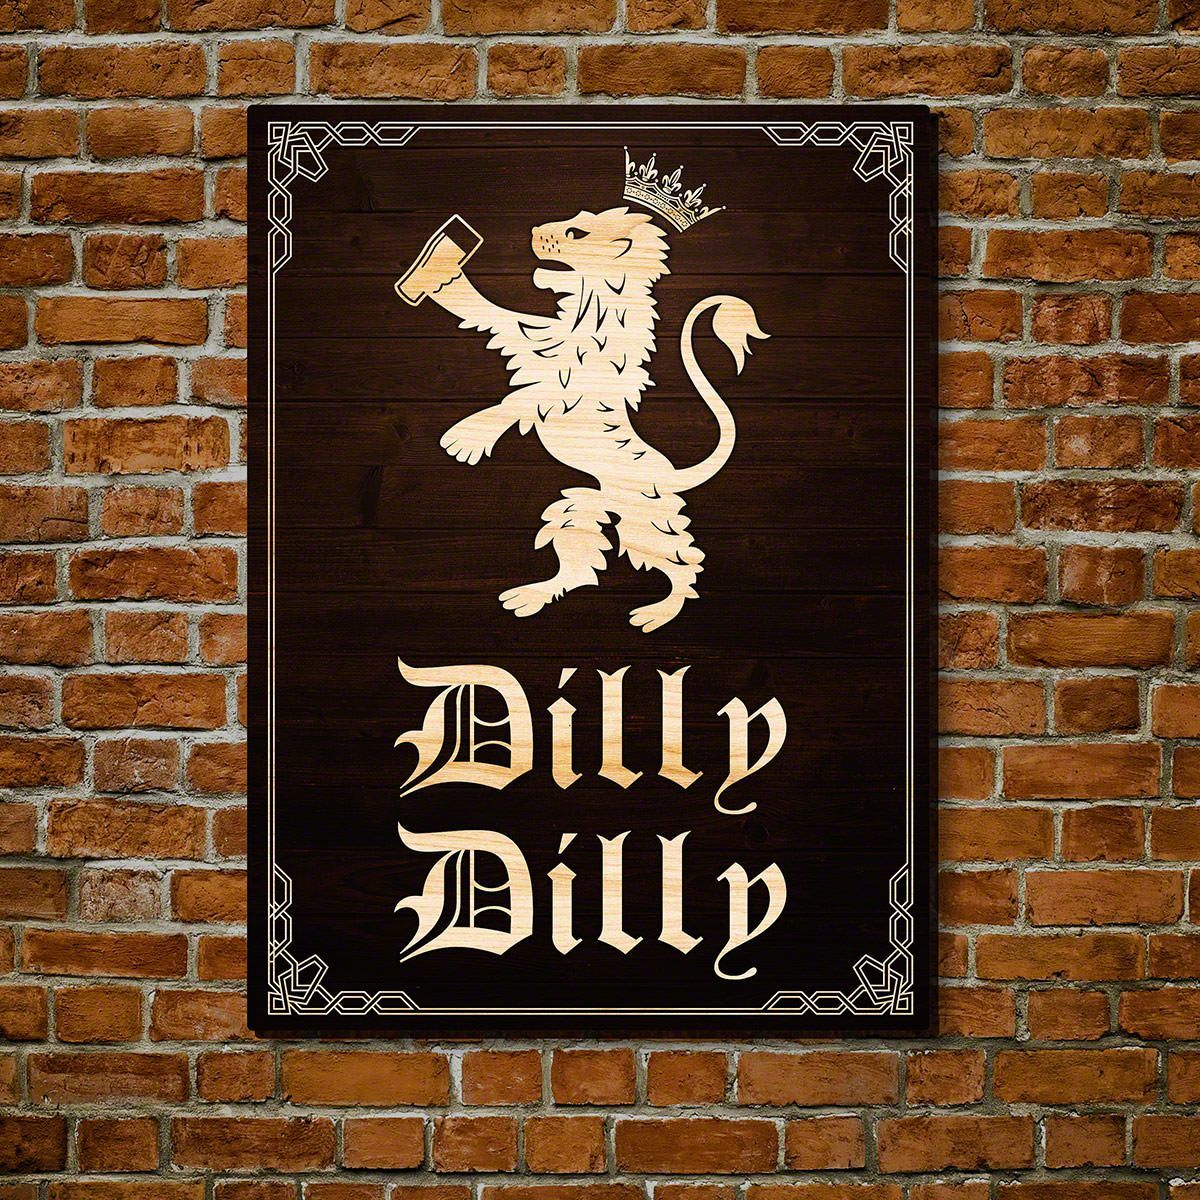 Dilly dilly love that newest bud light commercial so do we dilly dilly love that newest bud light commercial so do we celebrate mozeypictures Choice Image